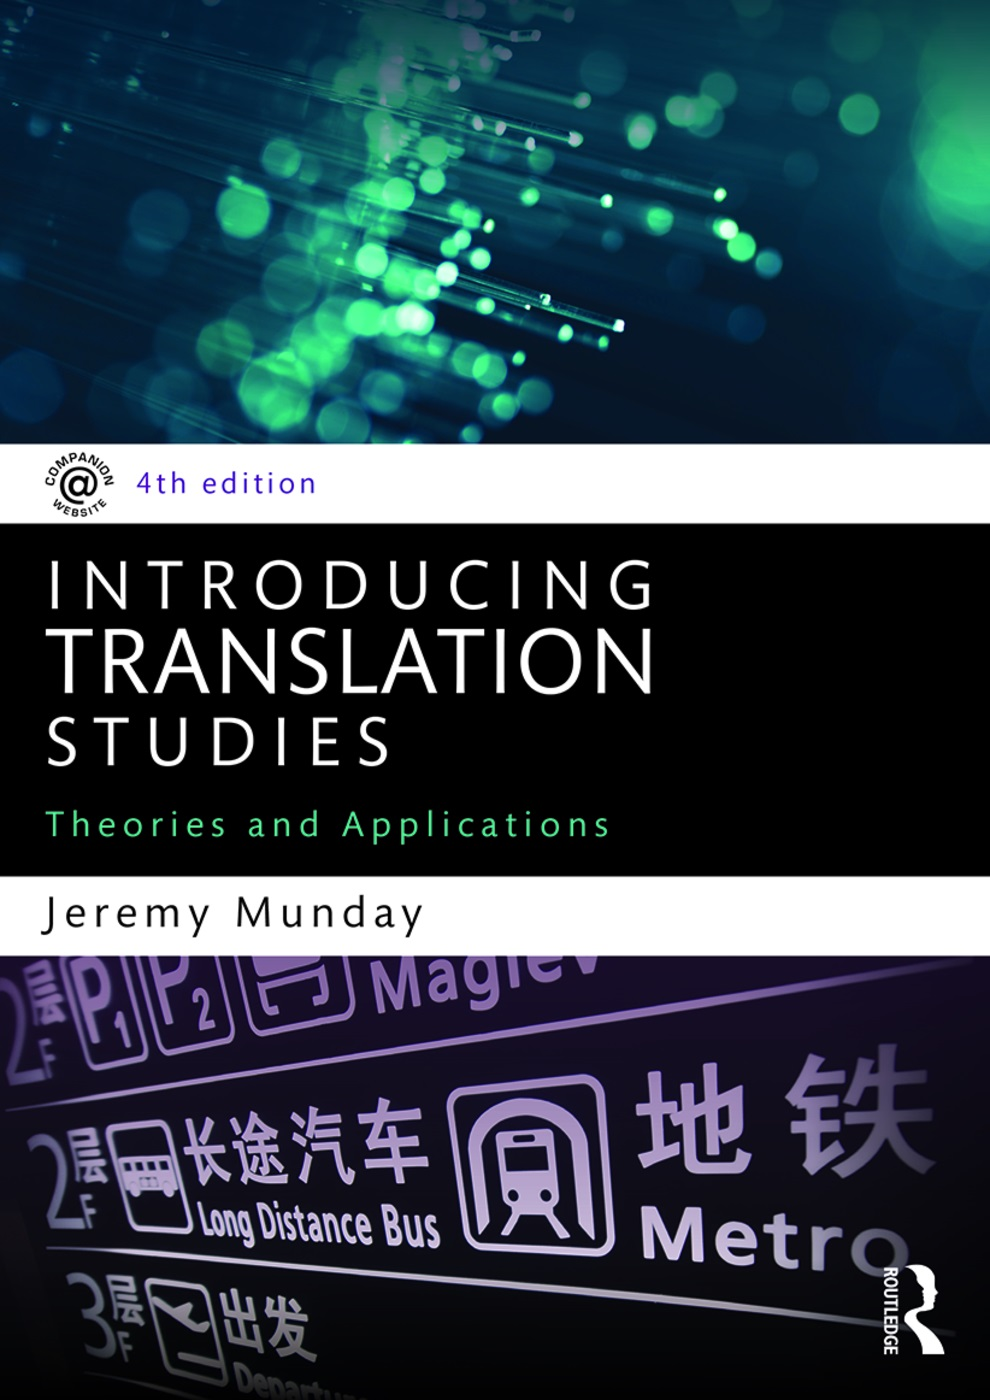 The cover of the fourth edition of Introducing Translation Studies.